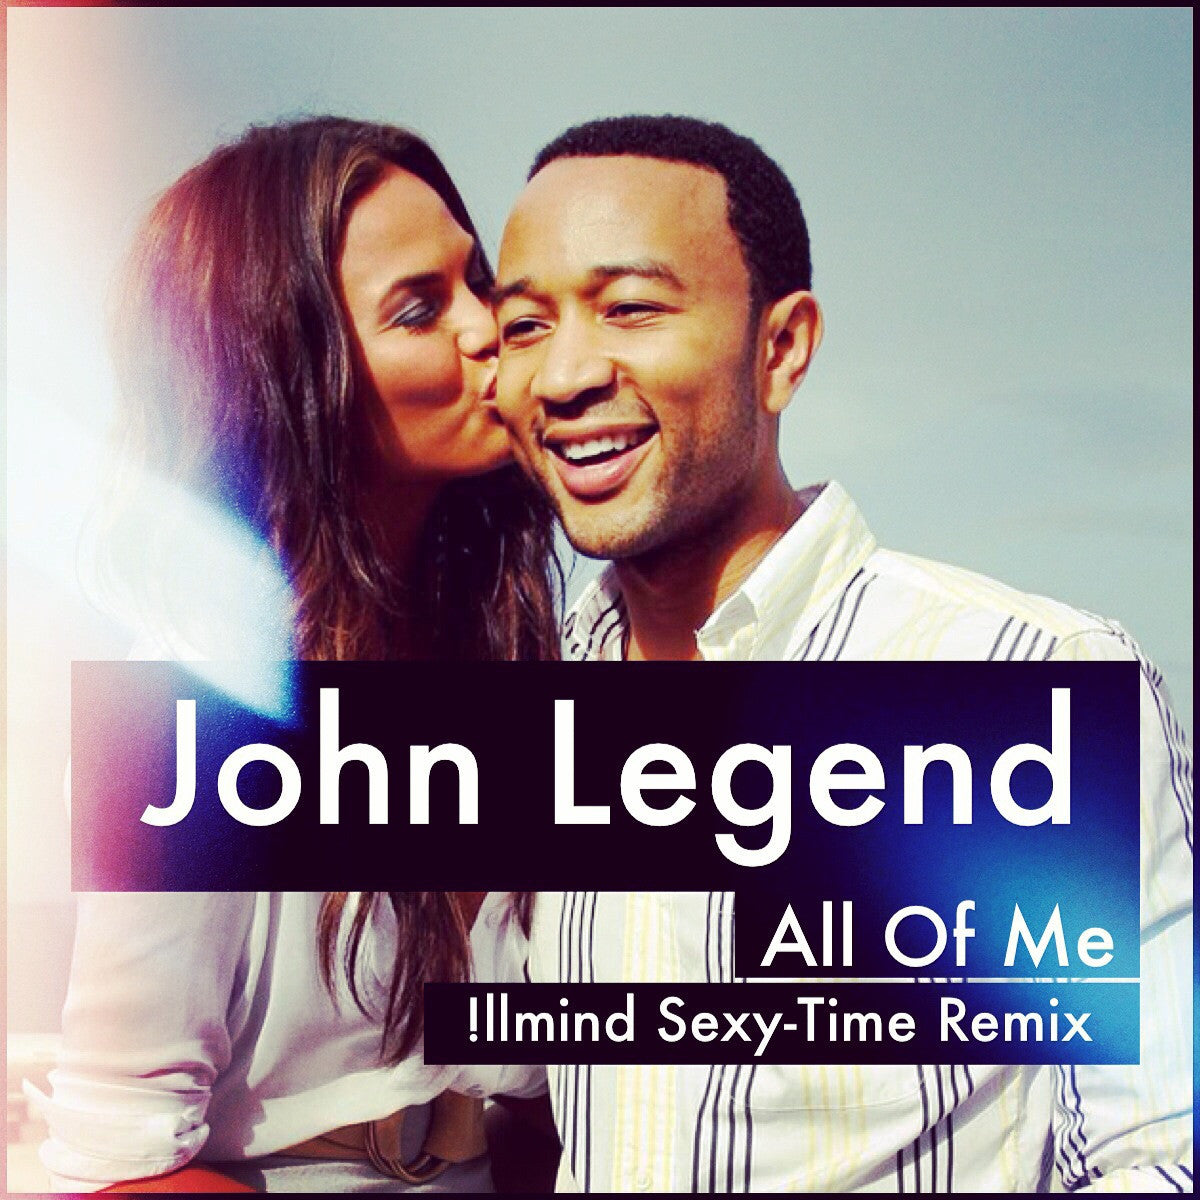 SINGLE - John Legend - All Of Me (!llmind Sexy-Time Remix)